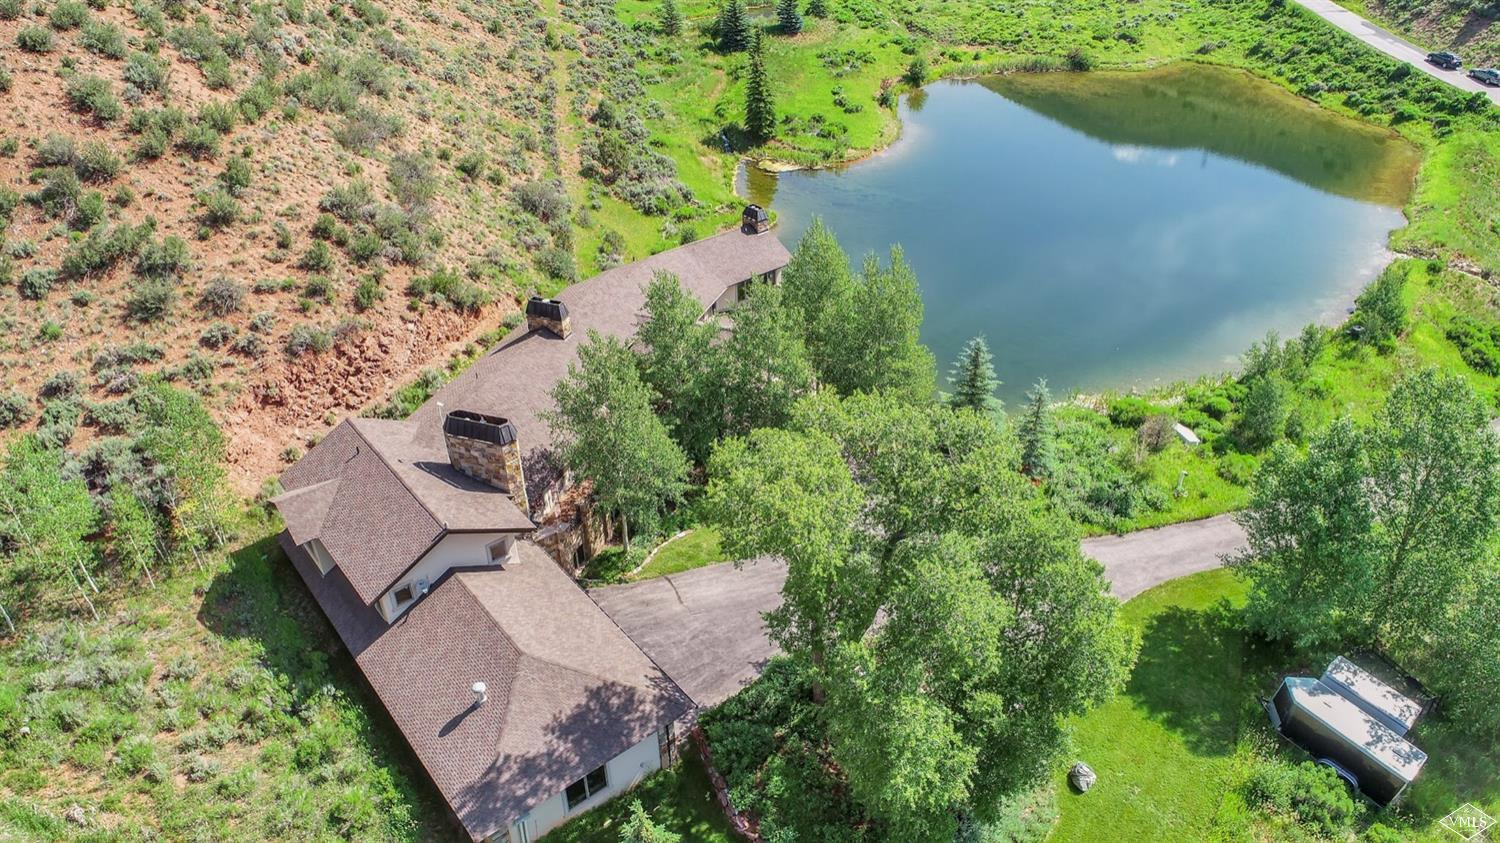 Unique rural setting with a huge Pond, Mature Landscaping, Waterfalls and Natural Beauty.Set on 37+ acres only a few minutes to Edwards. Lovely Colorado Craftsman 6 bdrm/6,1,1, bth w Many Custom Upgrades. Two Master Suites, 1 jr suite(or office), 6 fireplaces. Small 13 home HOA w low Taxes and Gated Community Entry. 3 car garage. Private Access to BLM Forest. Horses and Caretaker allowed. Resource zoned. An all season playground not to be missed!